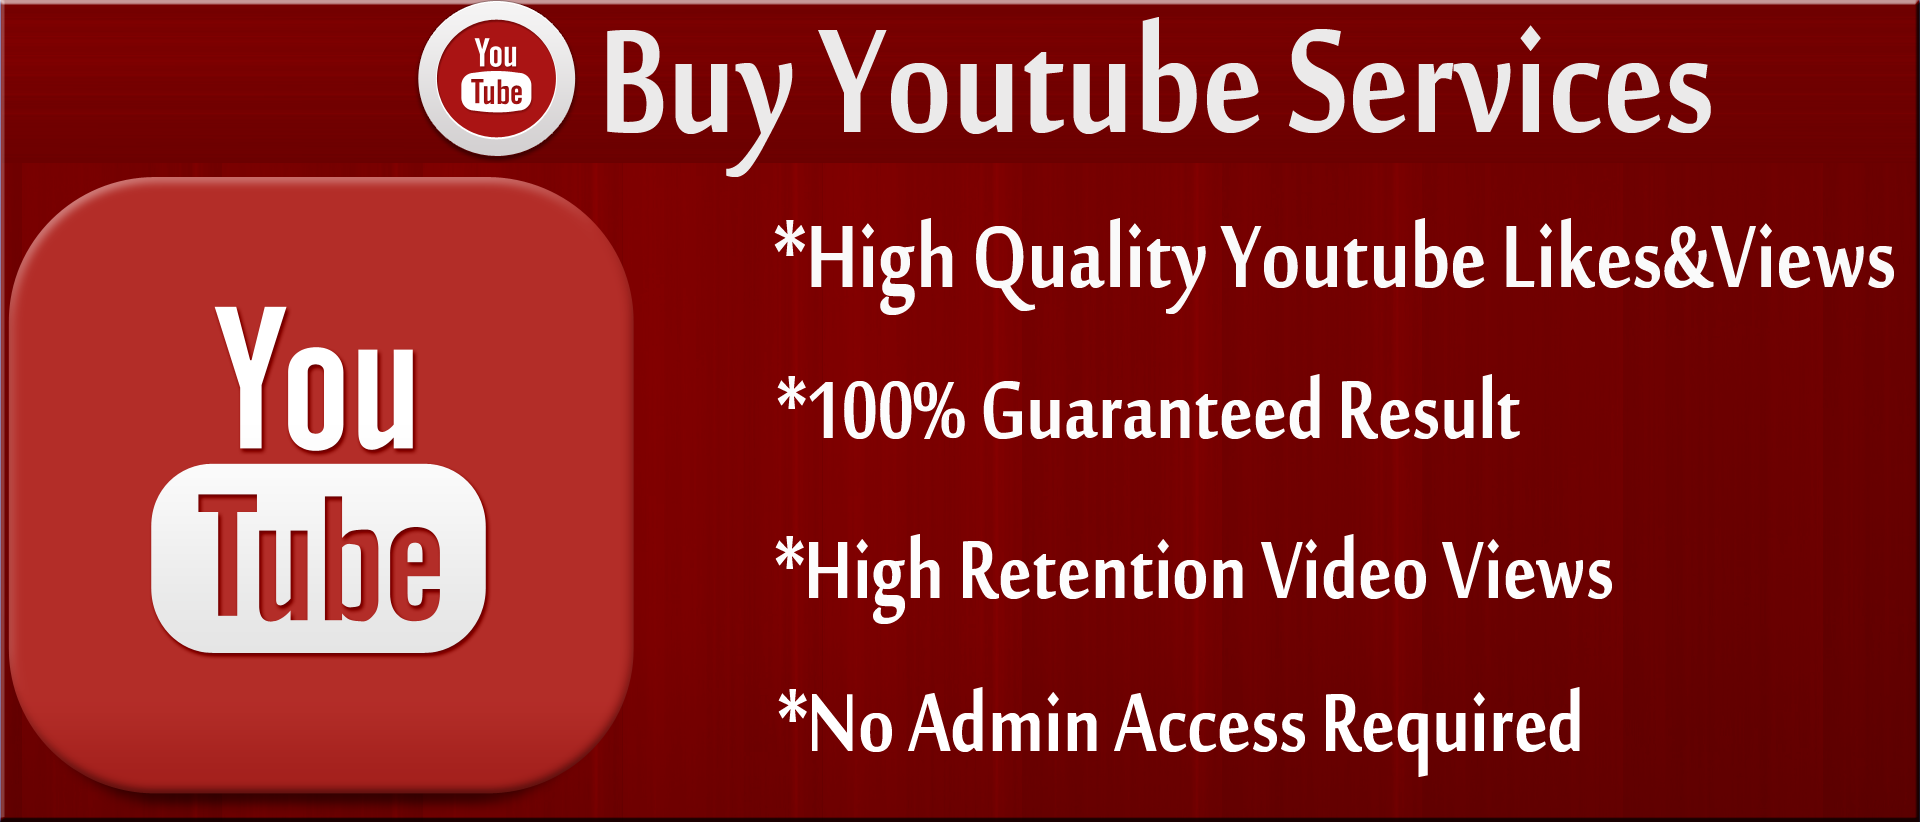 Youtube service | Buy Youtube Services | InstaValley.com is Best Social Media Marketing social media campaigns for small businesses promotion | Youtube liker | buy youtube likes | youtube dislike bot | buy 1 million views on youtube | buy youtube dislikes | services youtube | social media